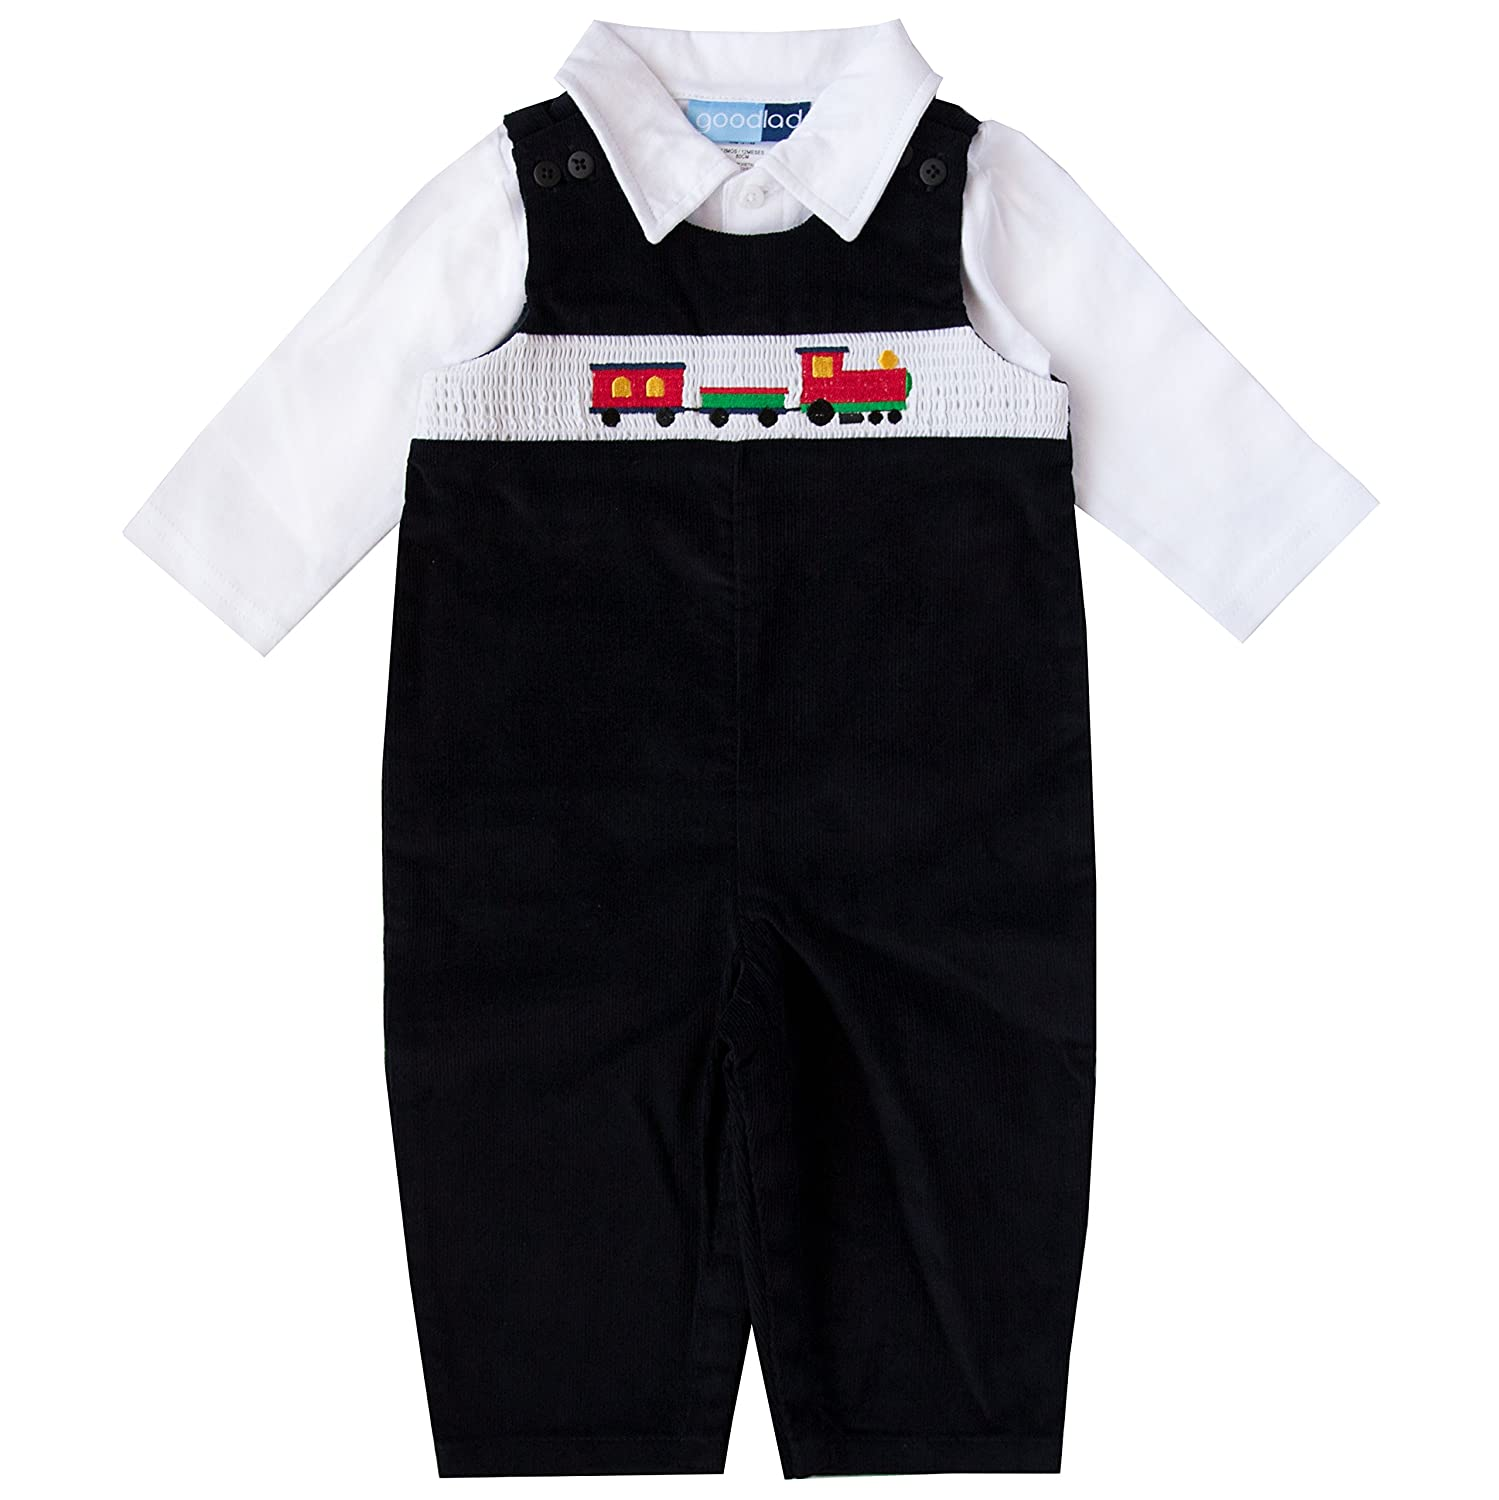 Good Lad Newborn/Infant Boy Black Corduroy Overall Set with Train Smocking